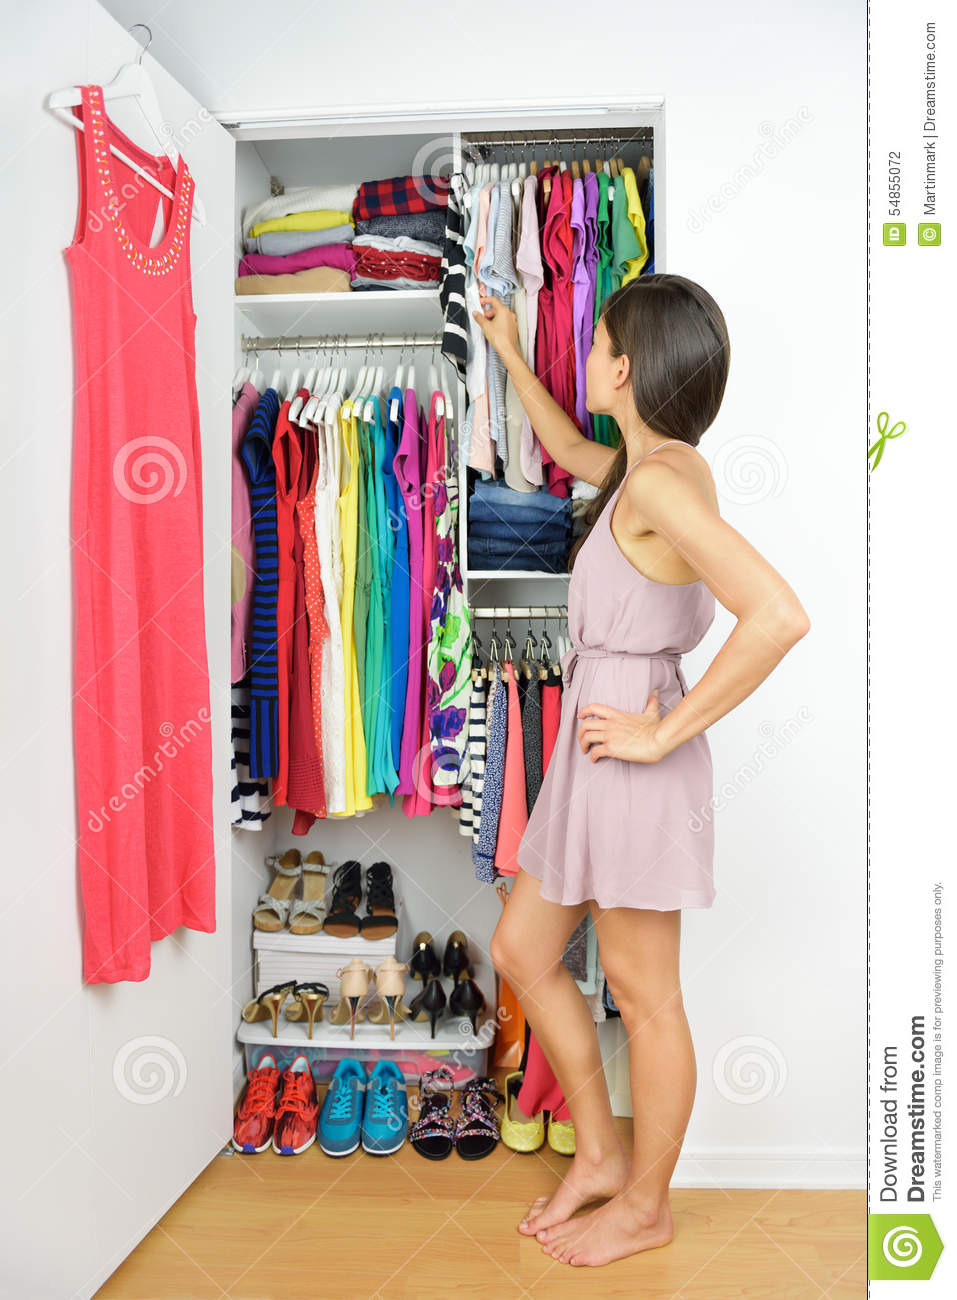 Home closet woman choosing her fashion clothing stock for Shopping for home